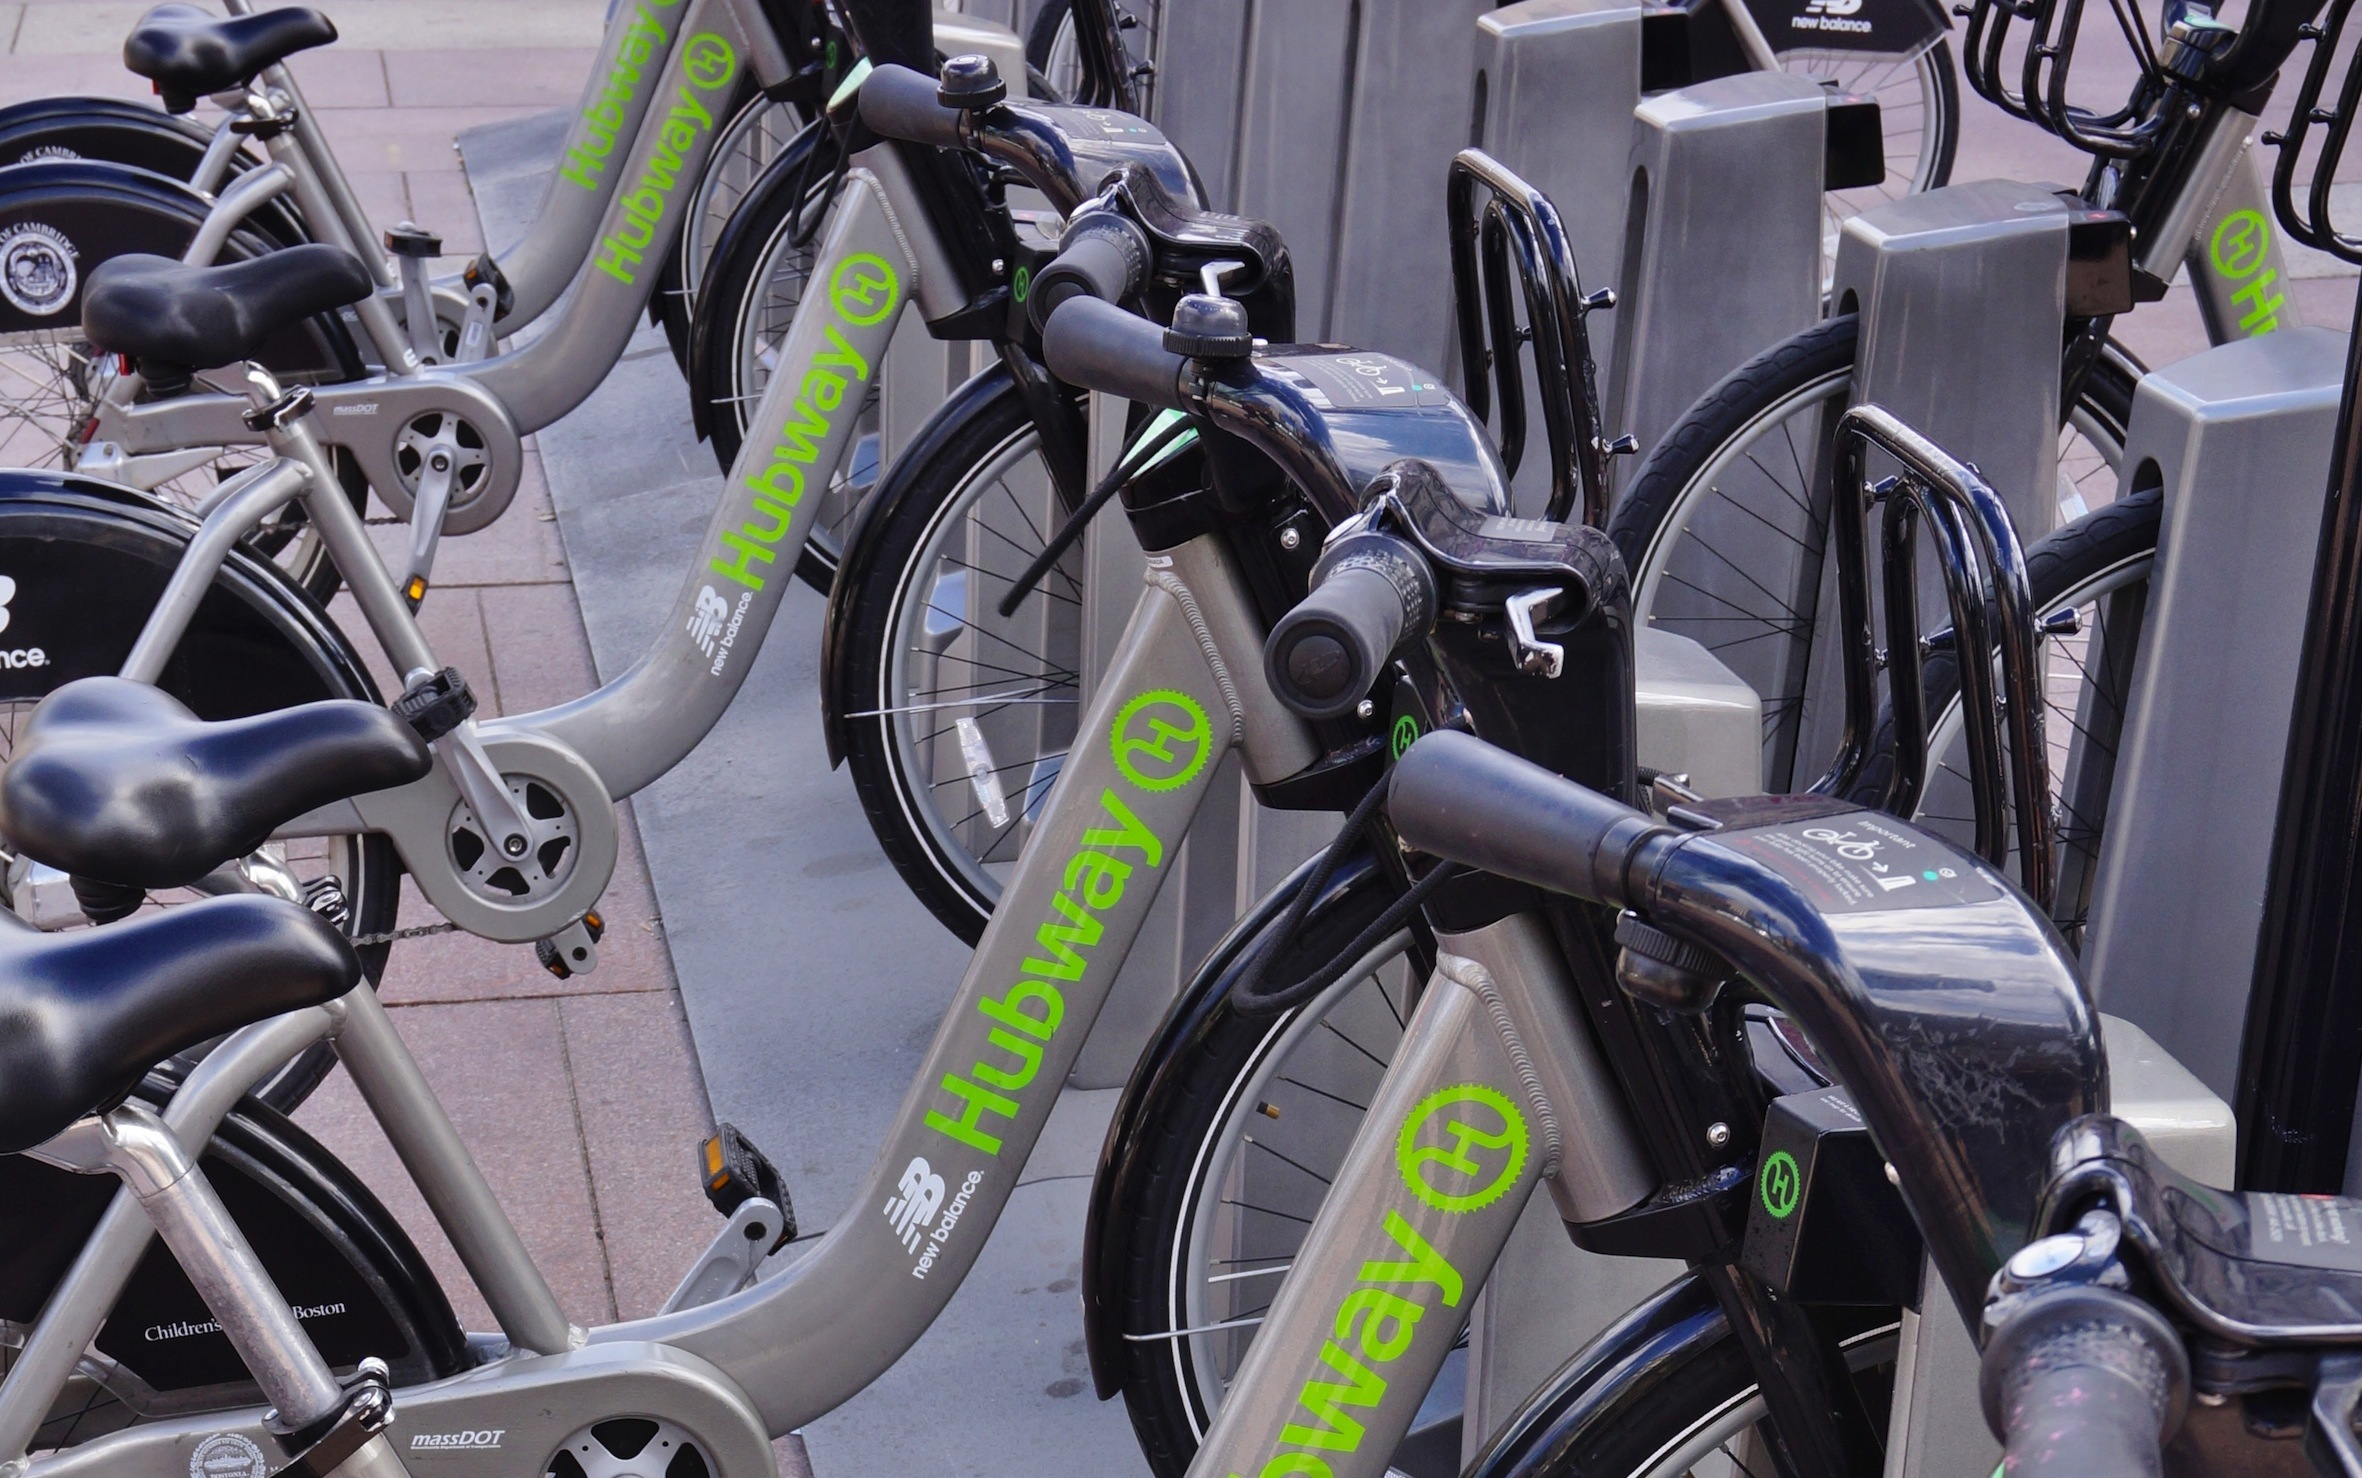 Ride the Hubway